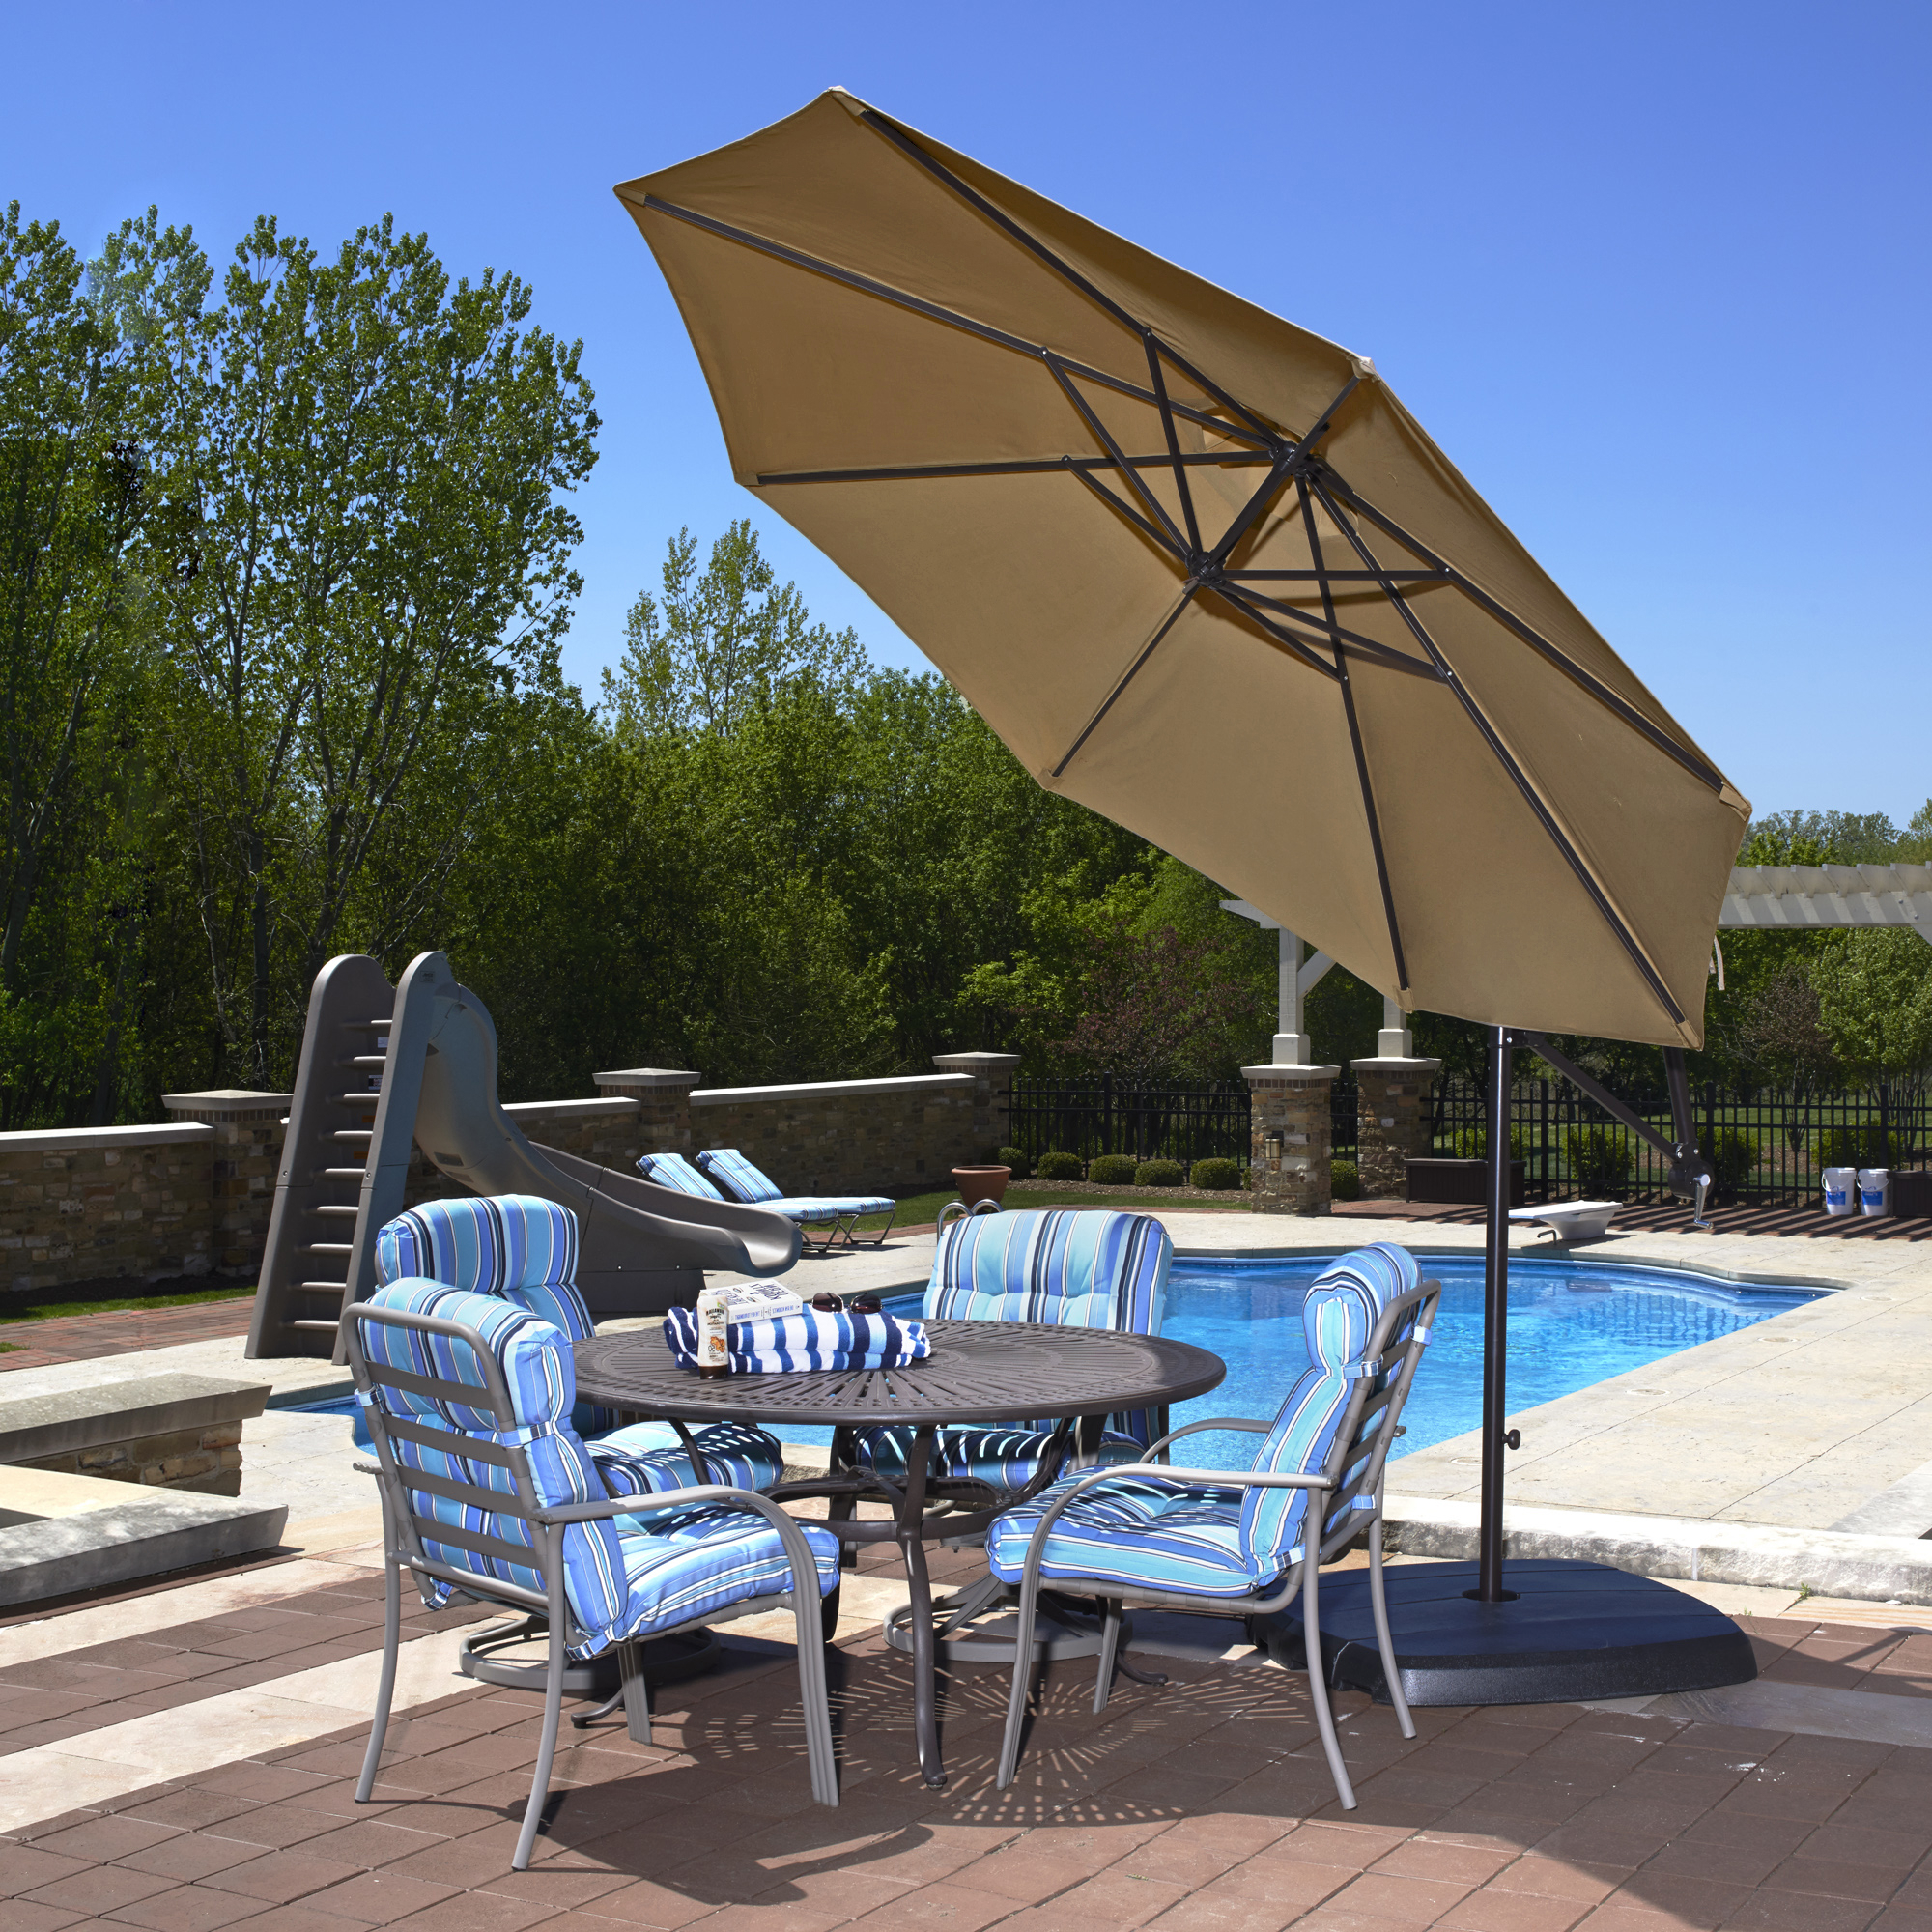 Island Umbrella Santiago 10 Ft Octagonal Cantilever Umbrella In Stone Olefin For Most Popular Cantilever Umbrellas (Gallery 10 of 20)